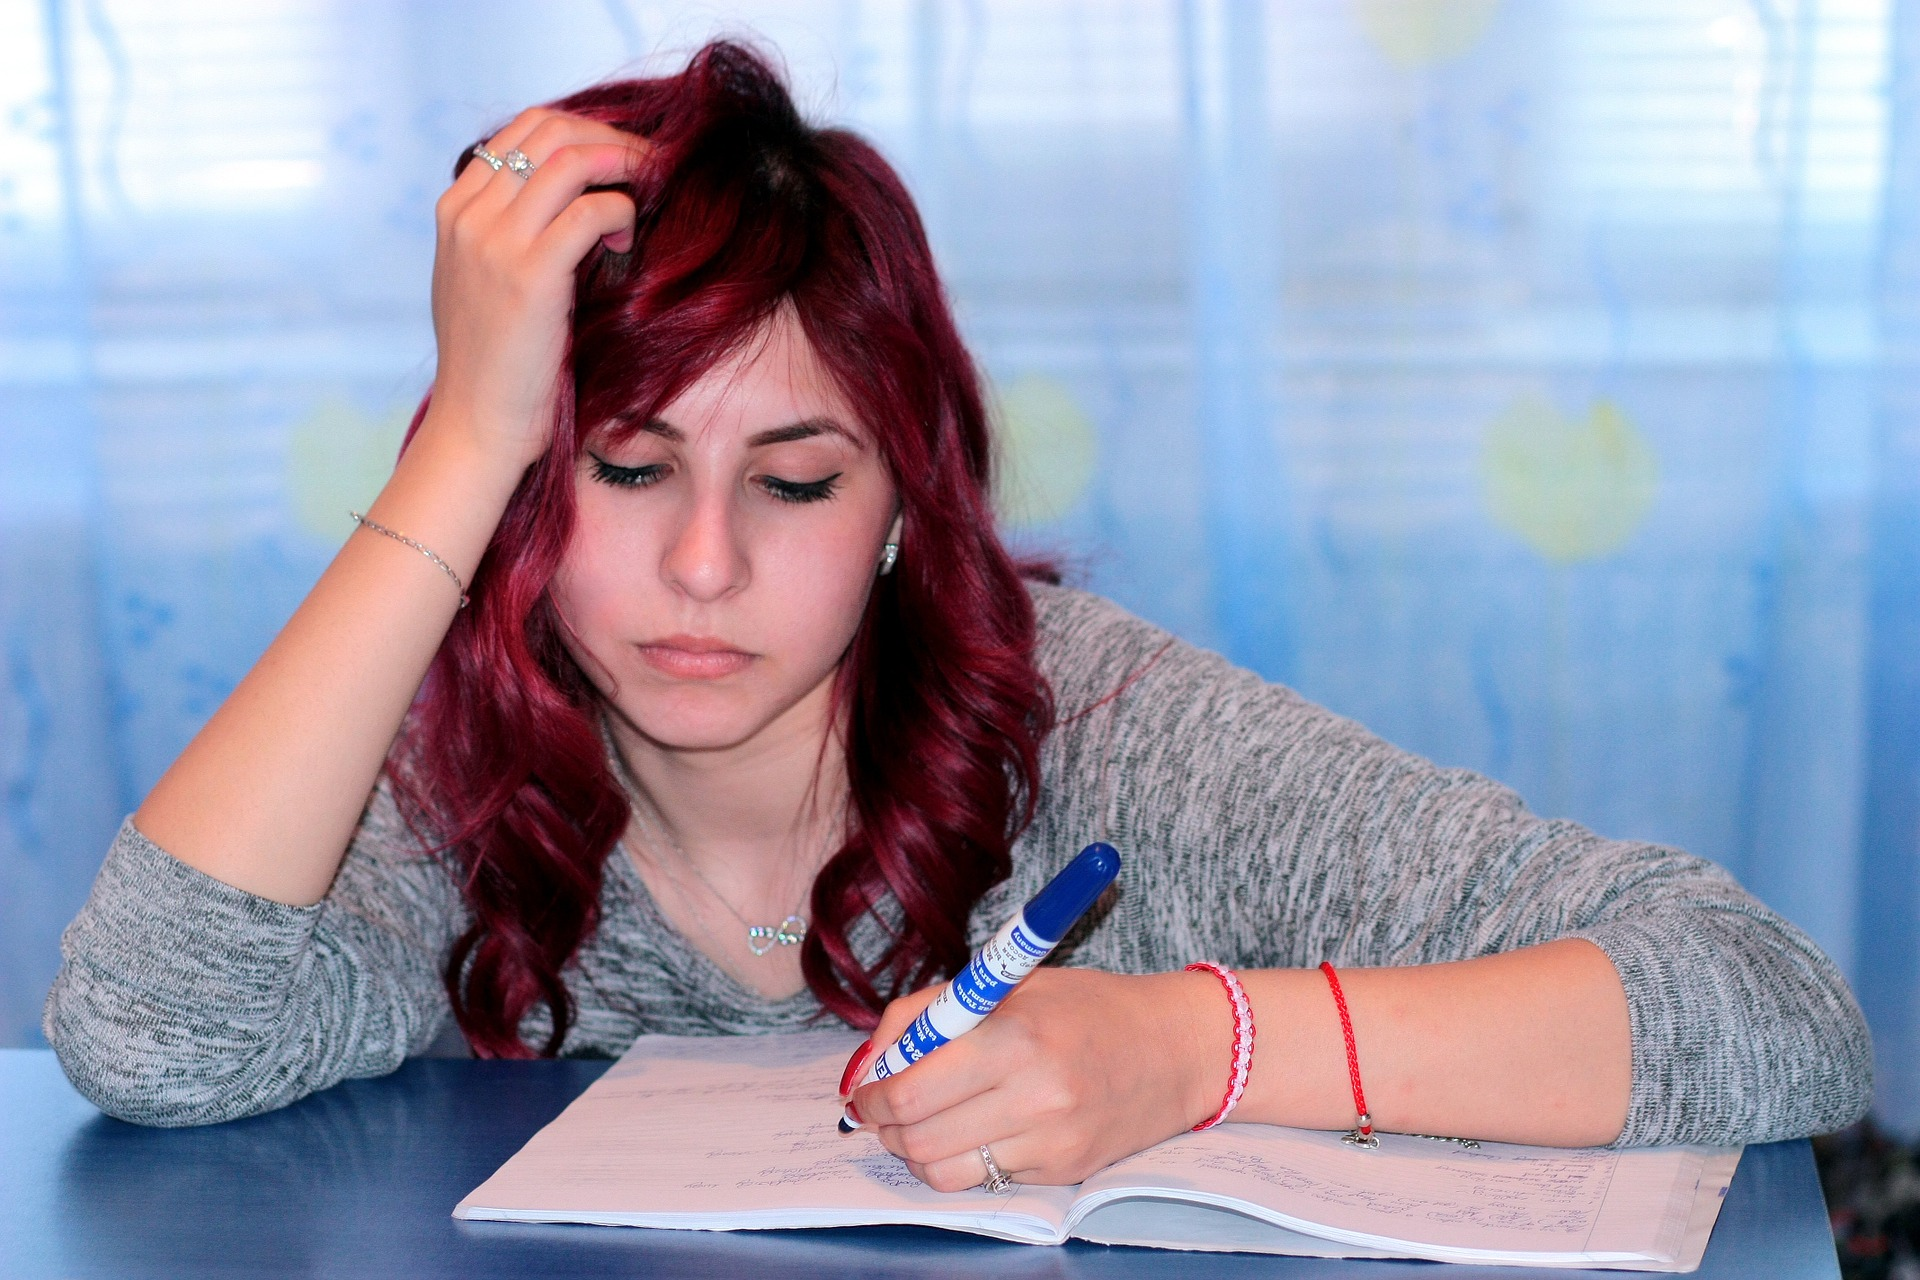 Best Ways To Stay Focused While Studying